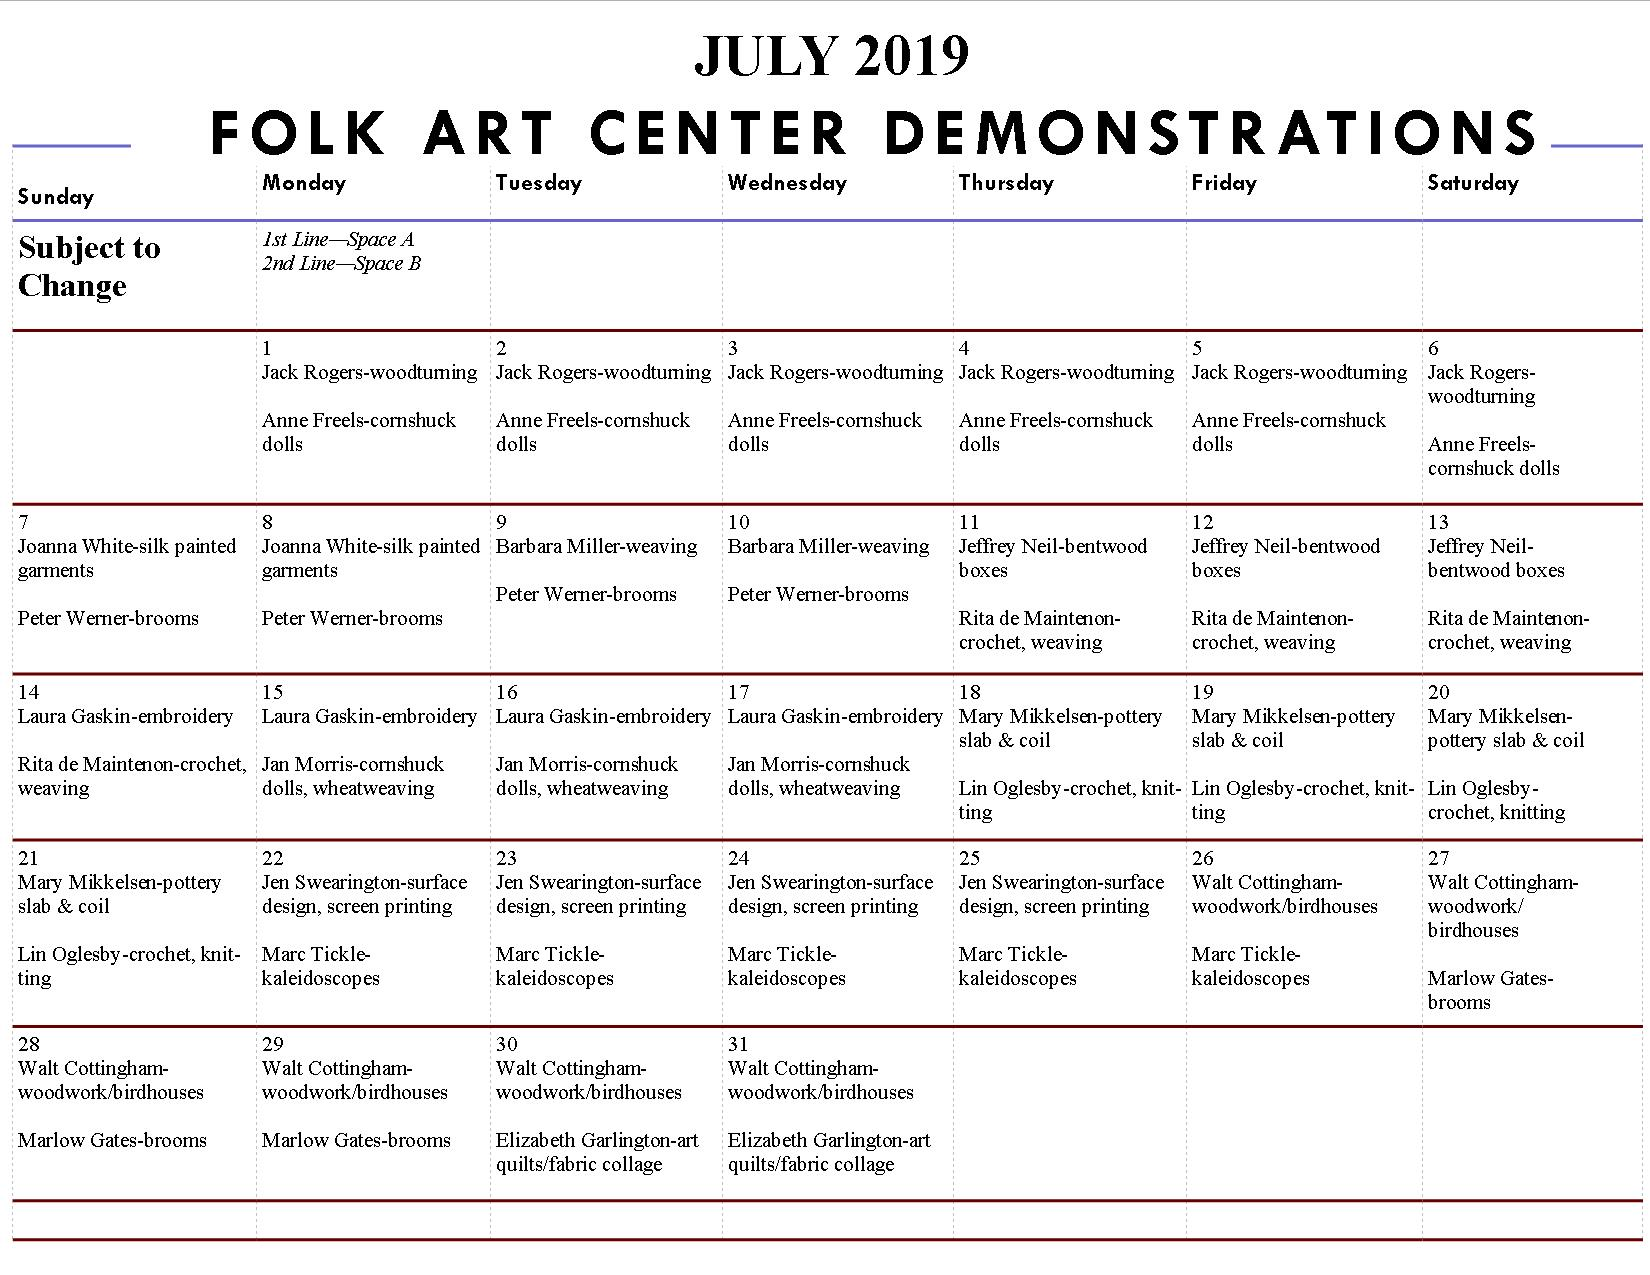 daily craft demonstrations at the folk art center in asheville north carolina